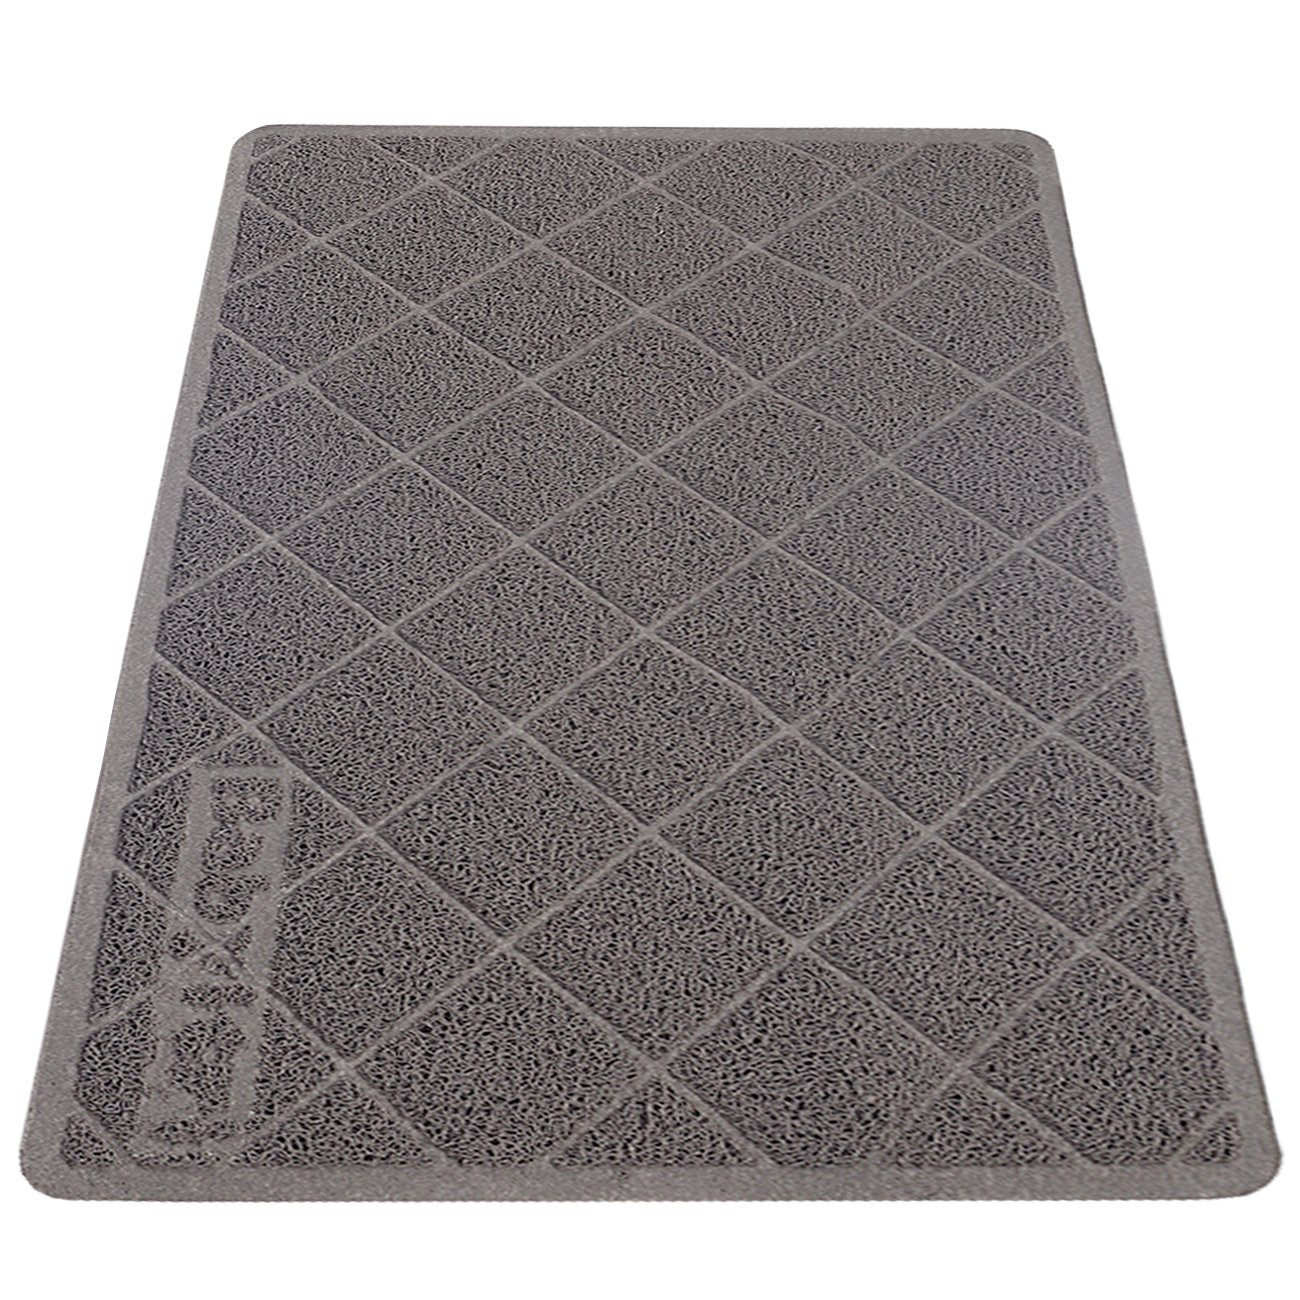 Babyltrl Extra Large Cat Litter Mat XL Jumbo Size 35 x 23 Phthalate Free Traps Litter from Box and Paws Non Slipping Backing Easy to Clean Soft for Sensitive Kitty Paws